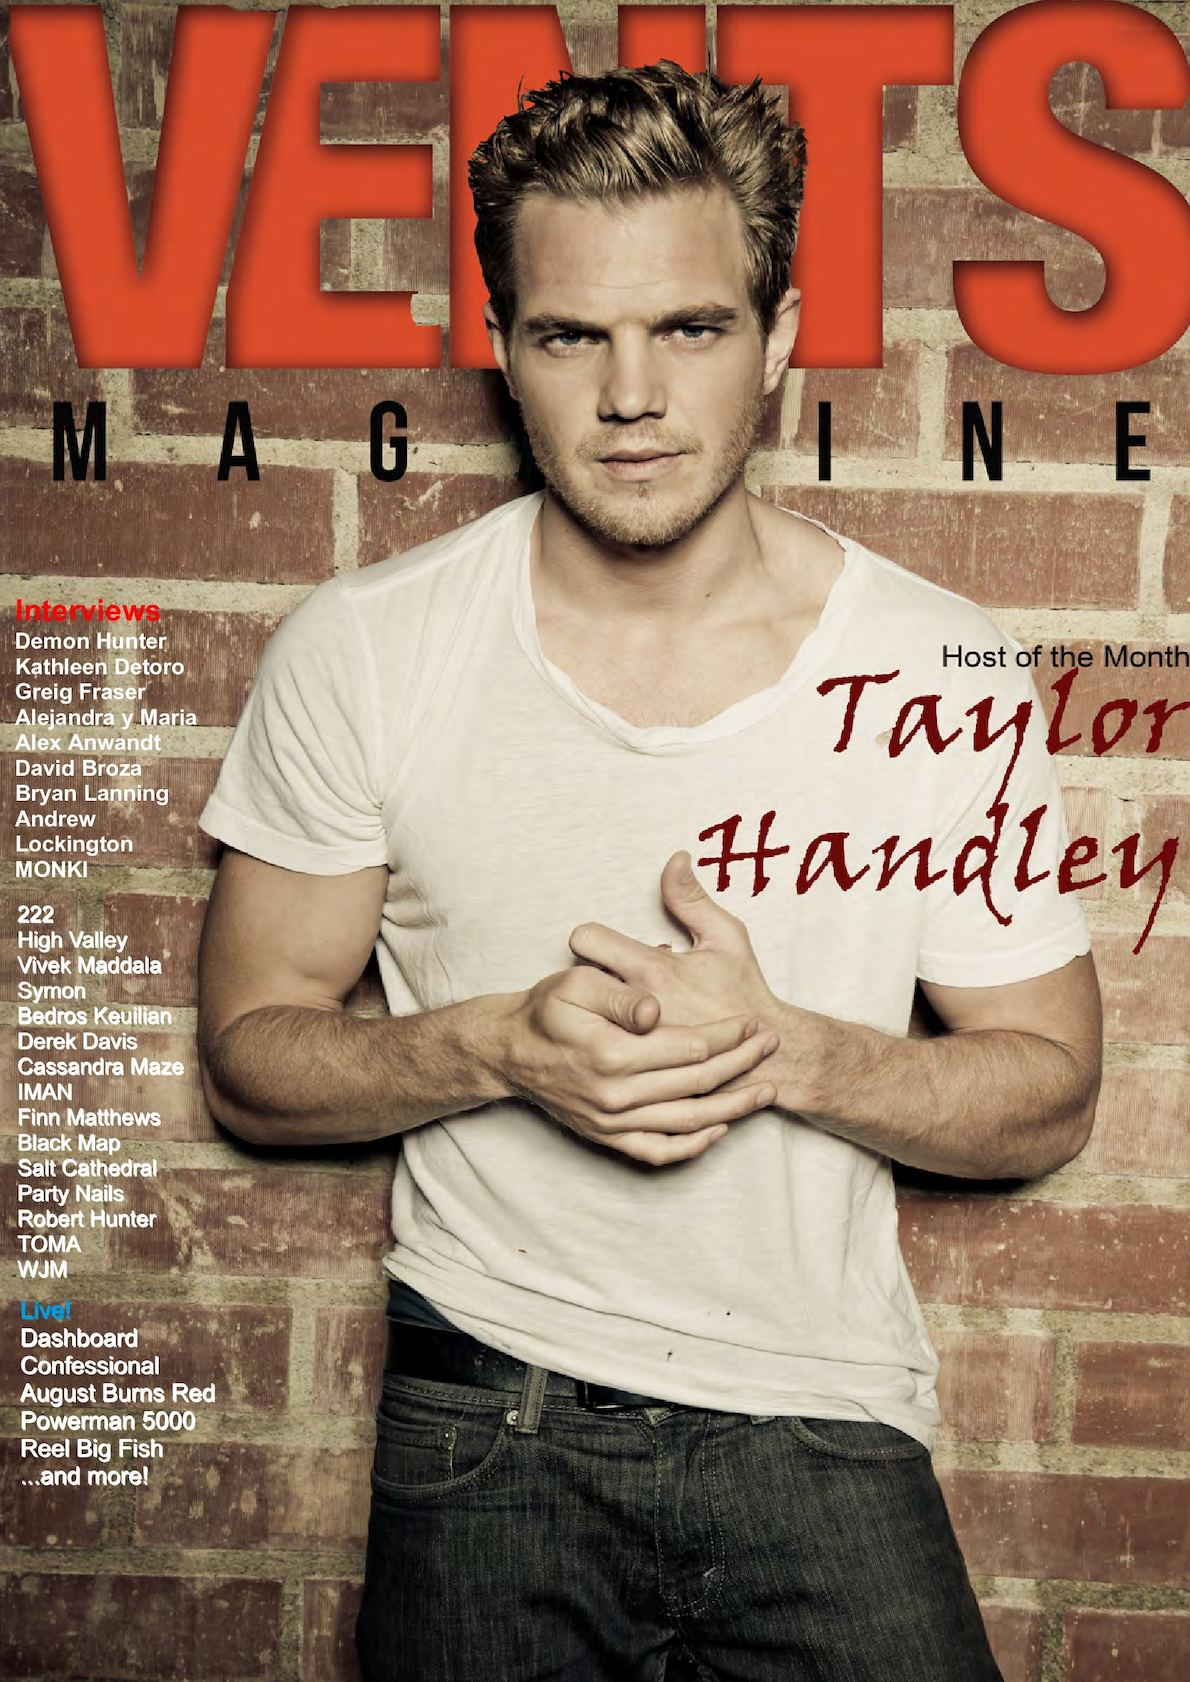 VENTS Magazine 68th Issue